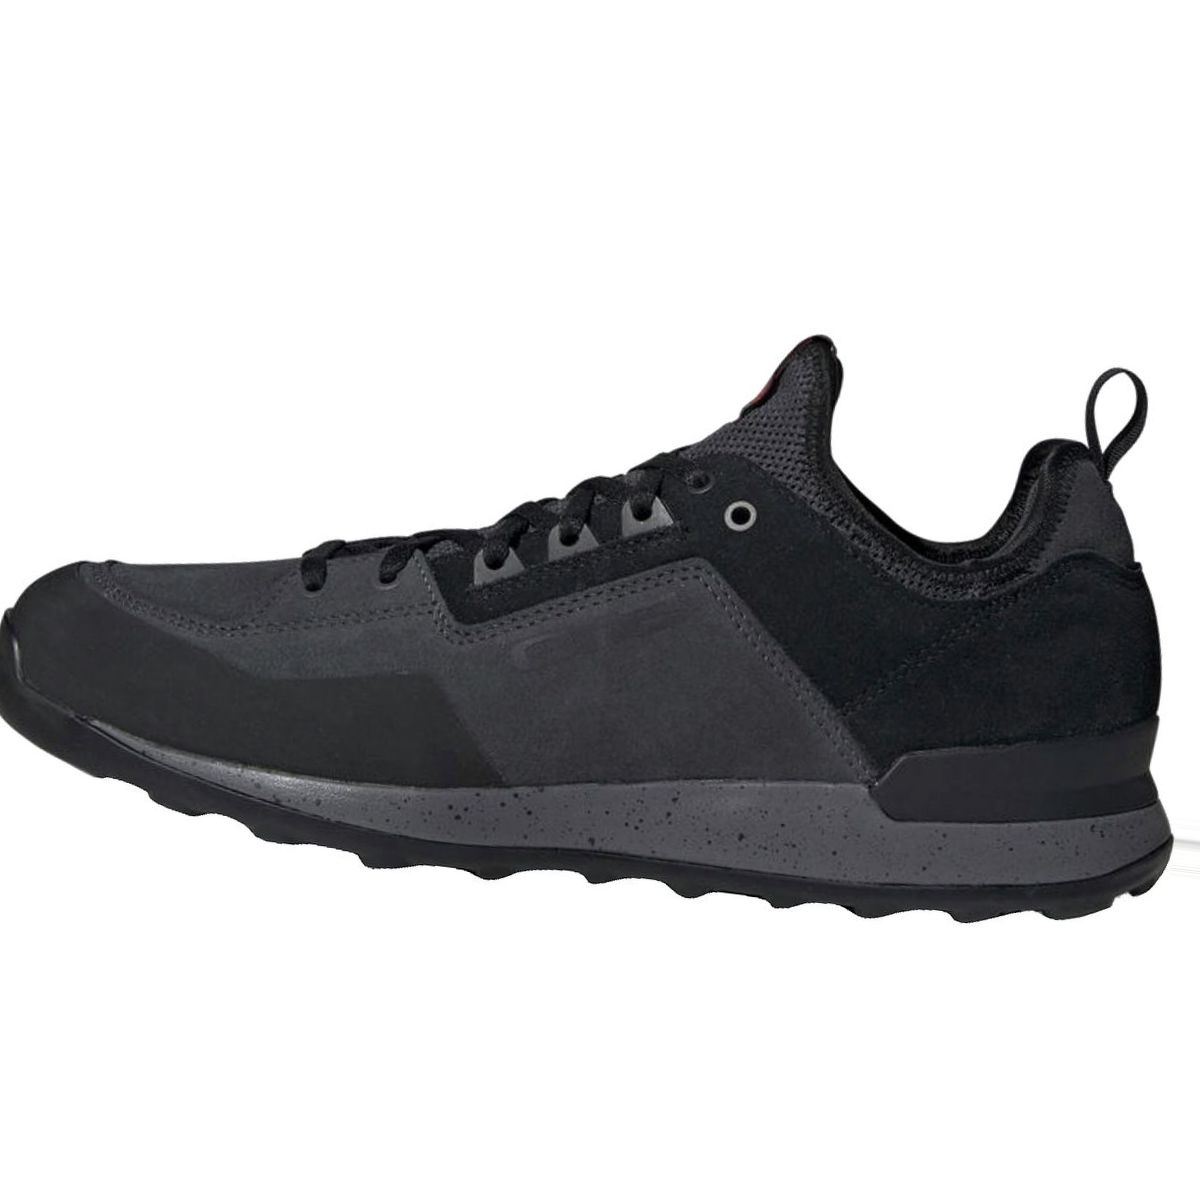 Five Ten Fivetennie Approach Shoe - Men's